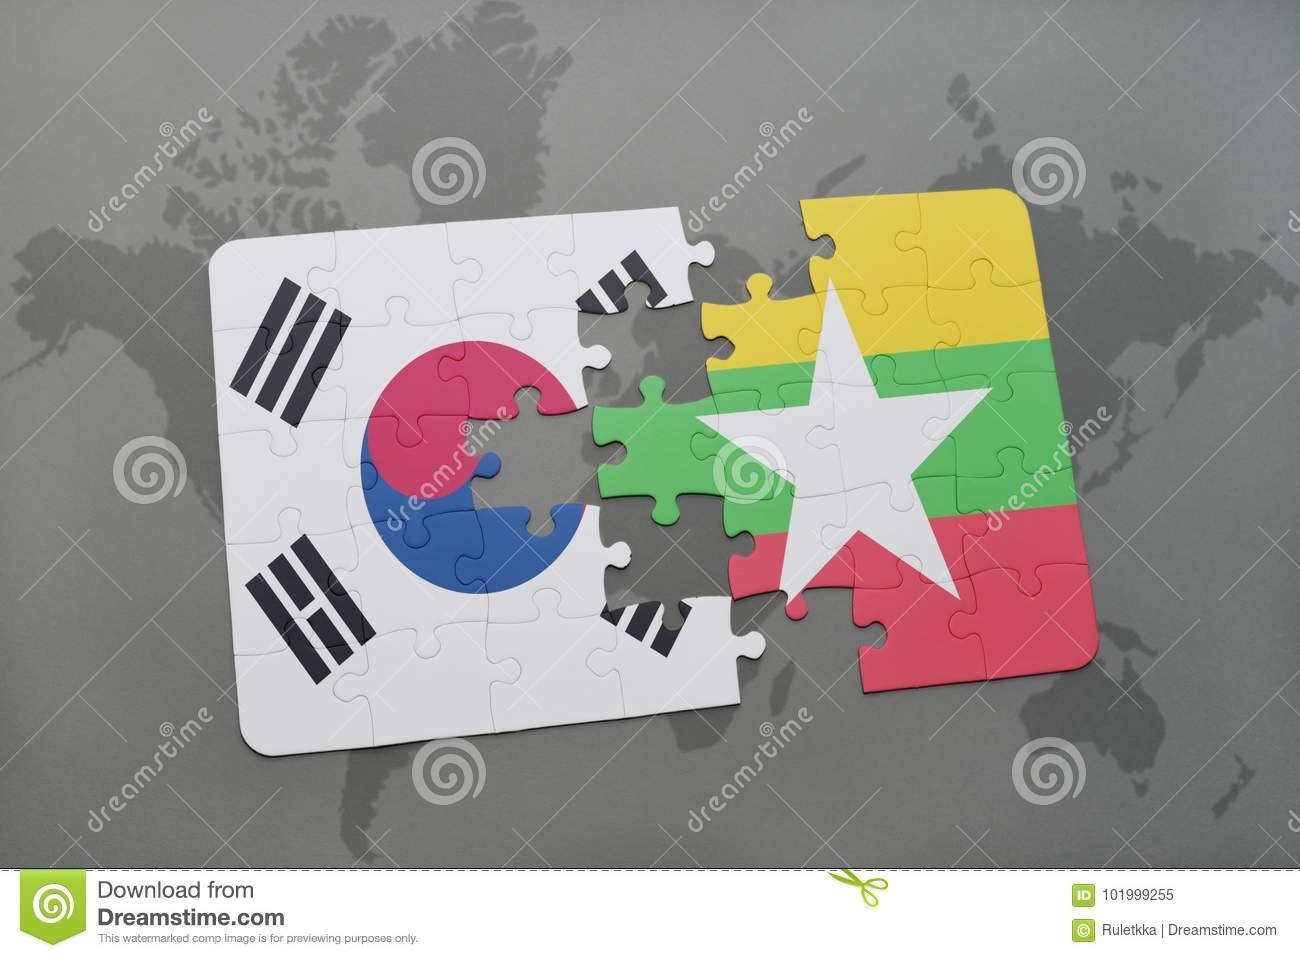 Puzzle with the national flag of south korea and myanmar on a world puzzle with the national flag of south korea and myanmar on a world map background gumiabroncs Choice Image